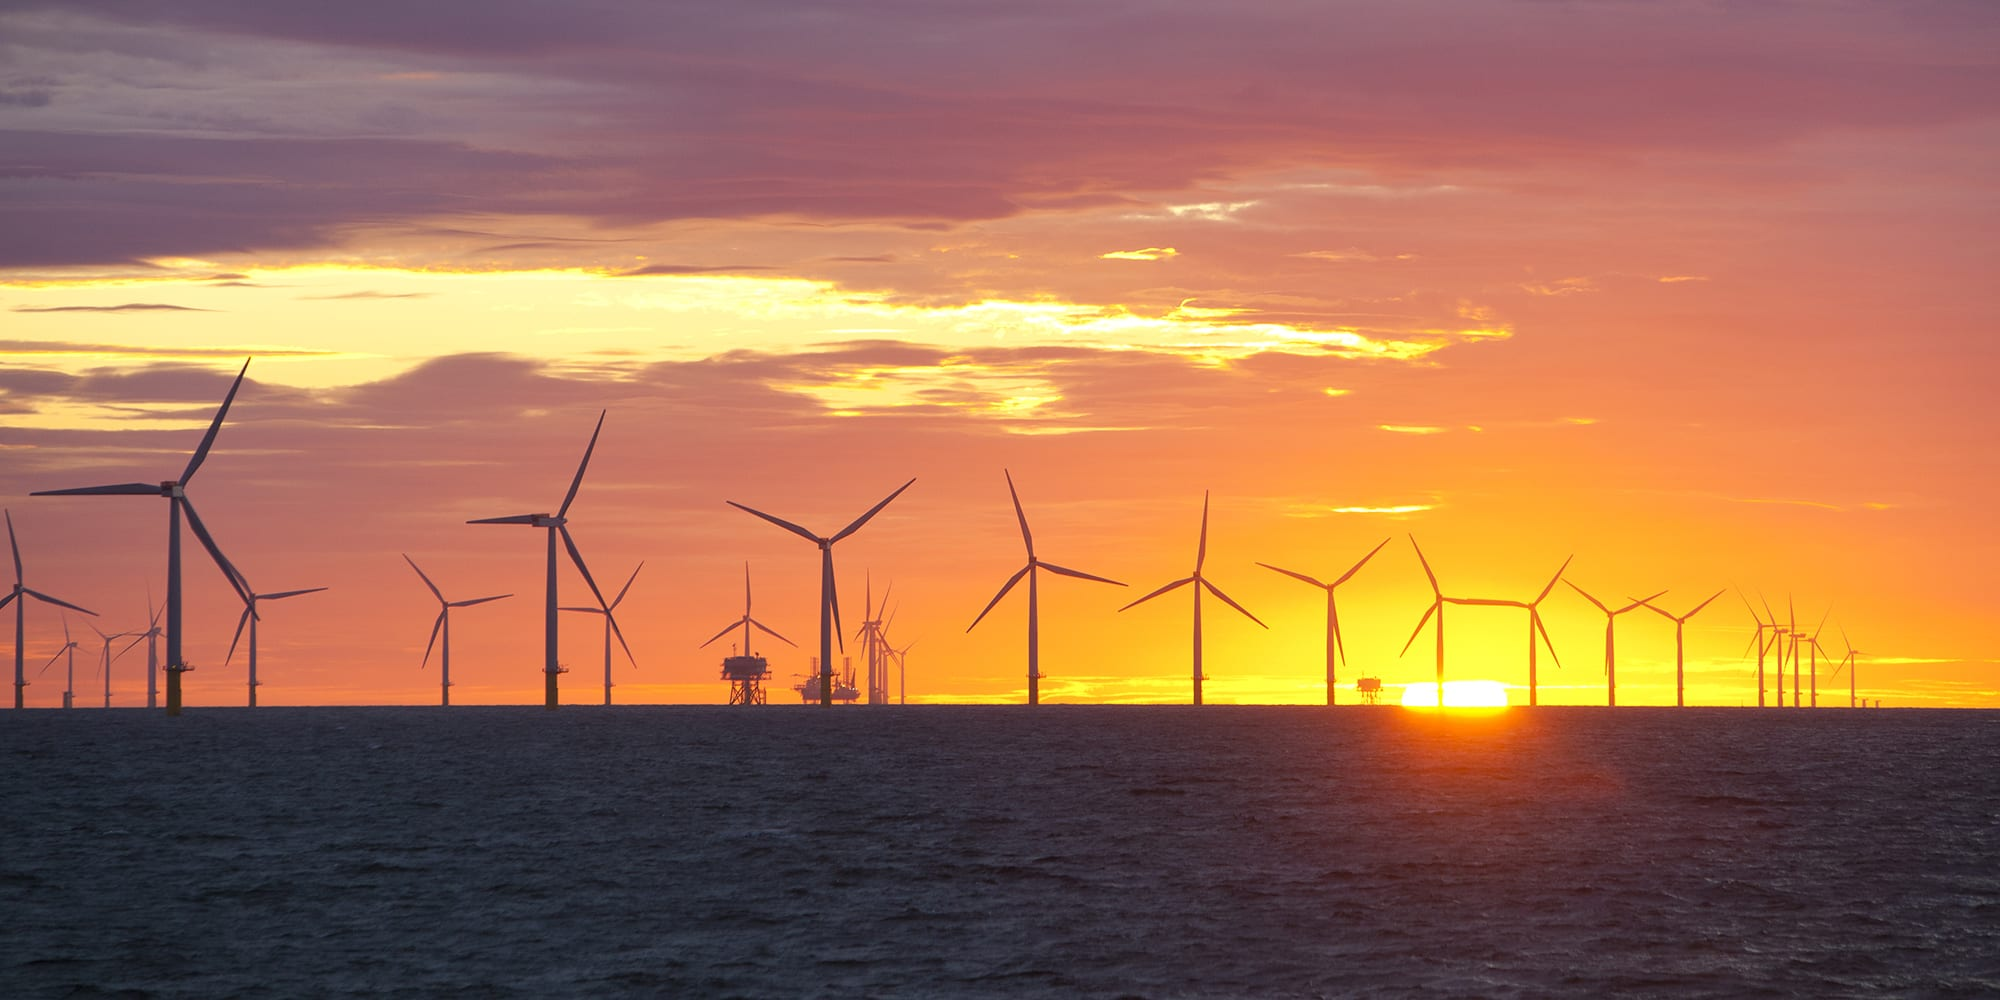 Photograph of sun setting behind a field of wind turbines